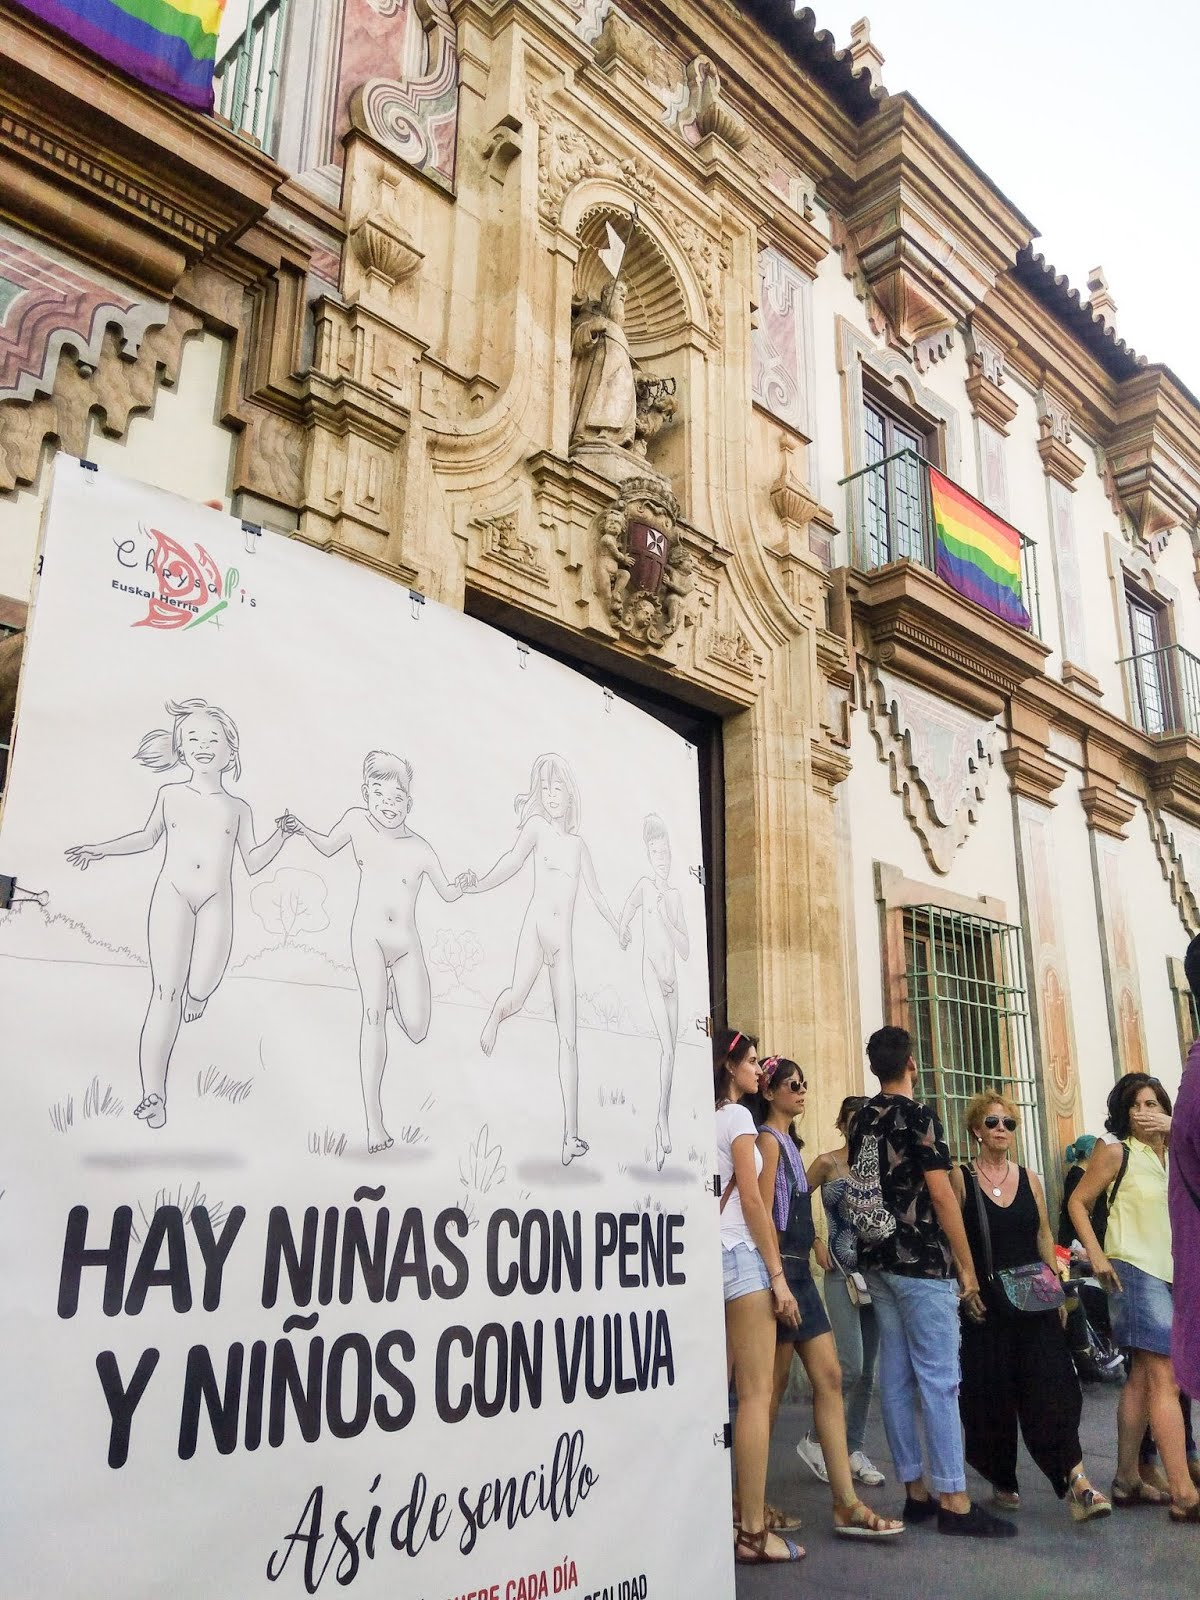 HAY NIÑAS CON PENE Y NIÑOS CON VULVA